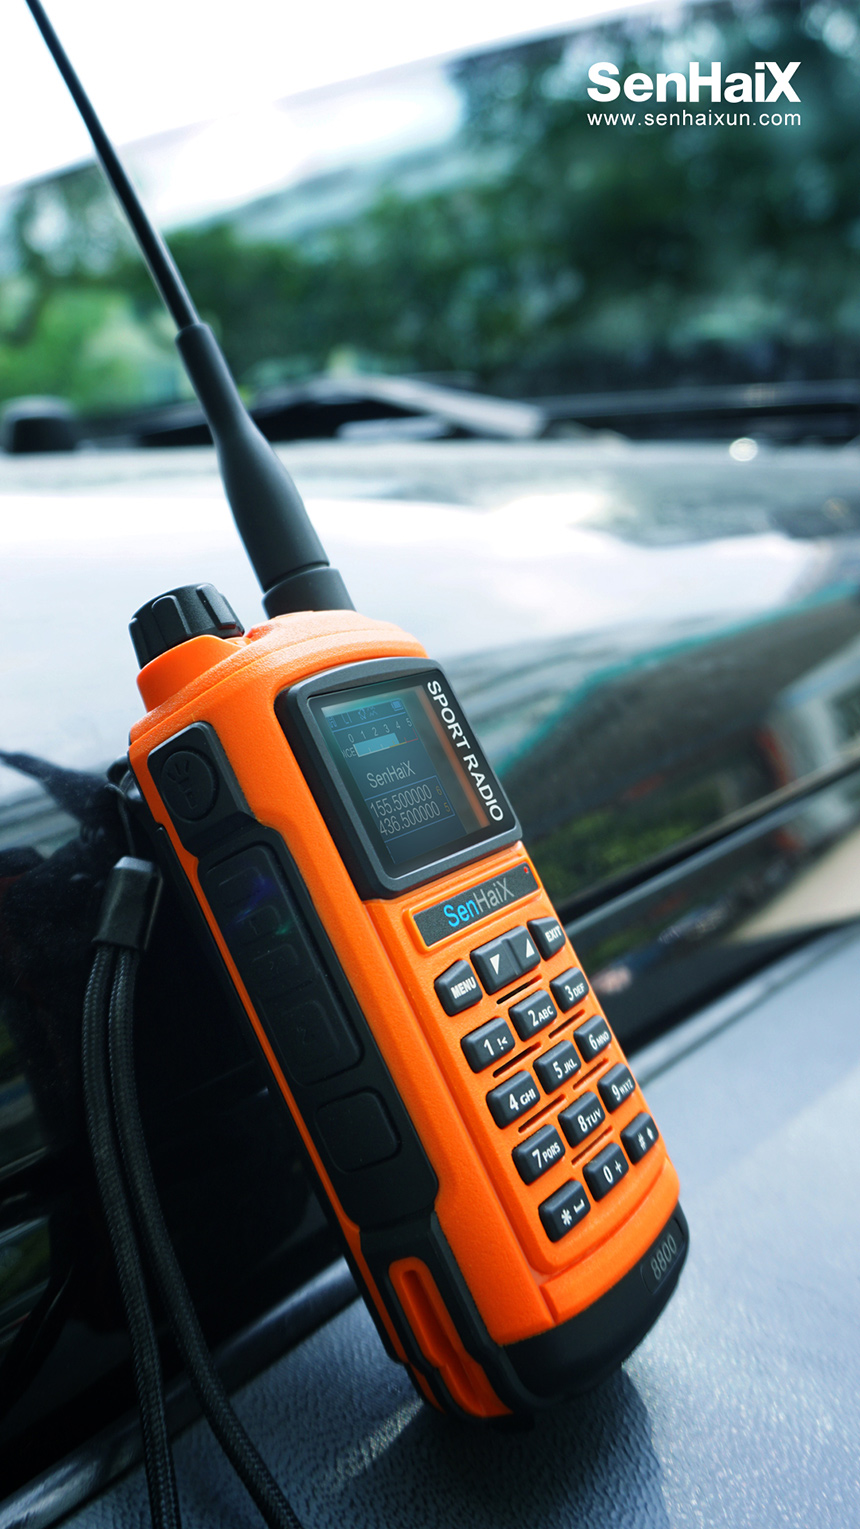 Senhaix dual band two way radio